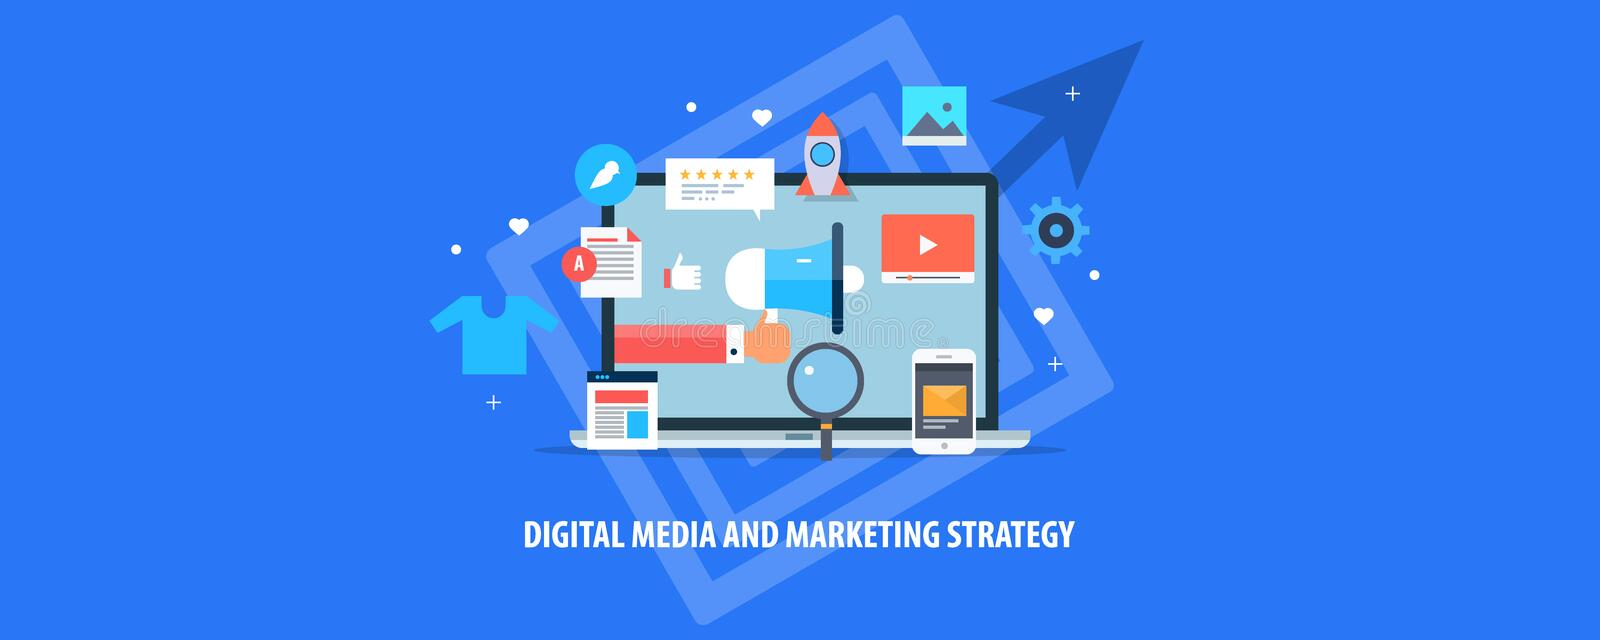 Digitale media, Internet-marketing, inhoudsbevordering, e-mail, mobiele, virale videoinhoud, marketing strategieconcept stock illustratie